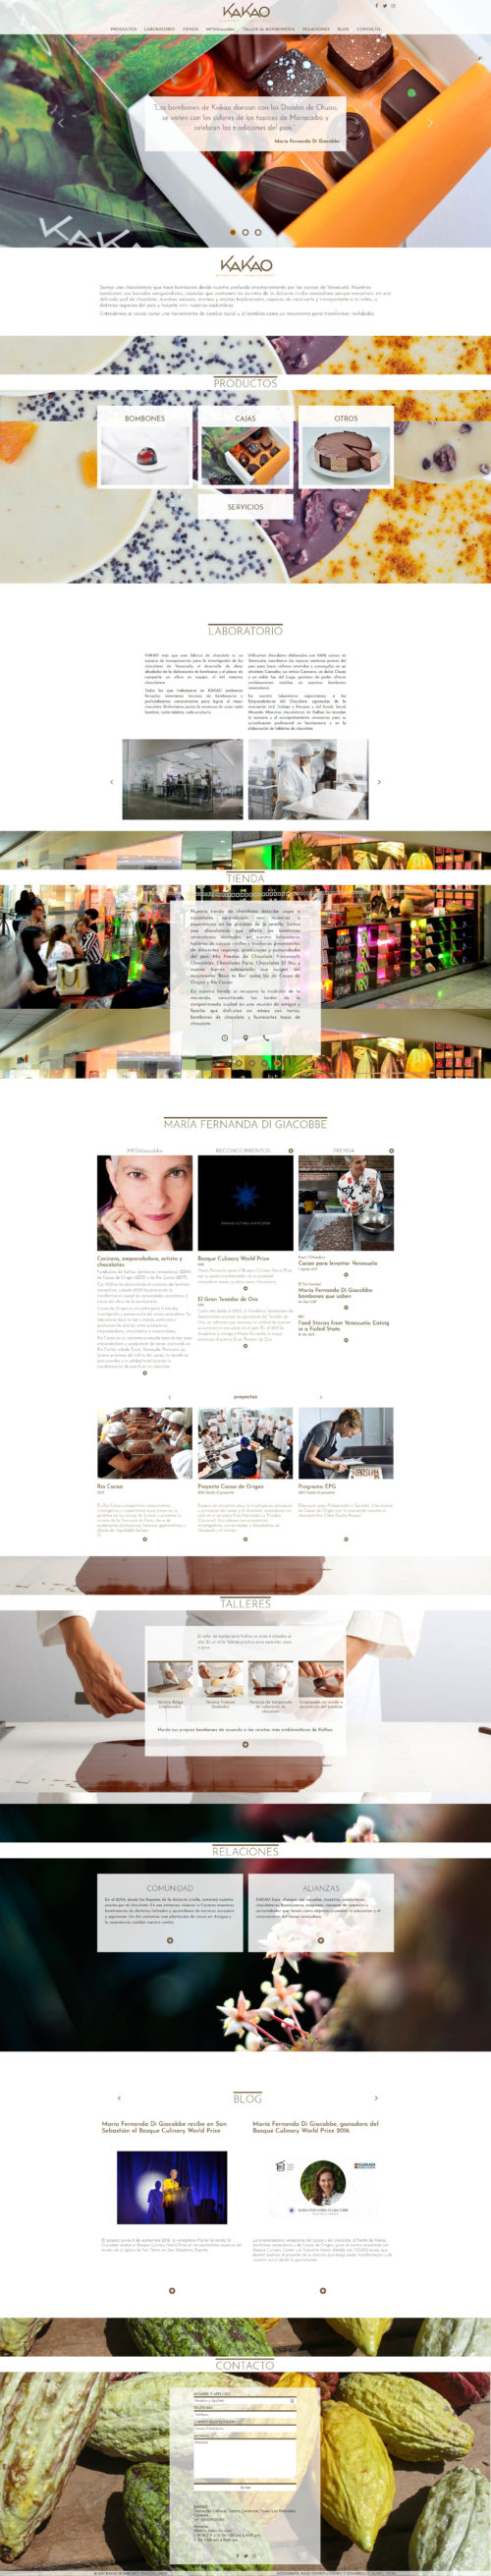 Kakao | Chocolate factory with a deep infatuation for Venezuelan' cocoa. Responsive infinite scroll website developed for WordPress with bootstrap